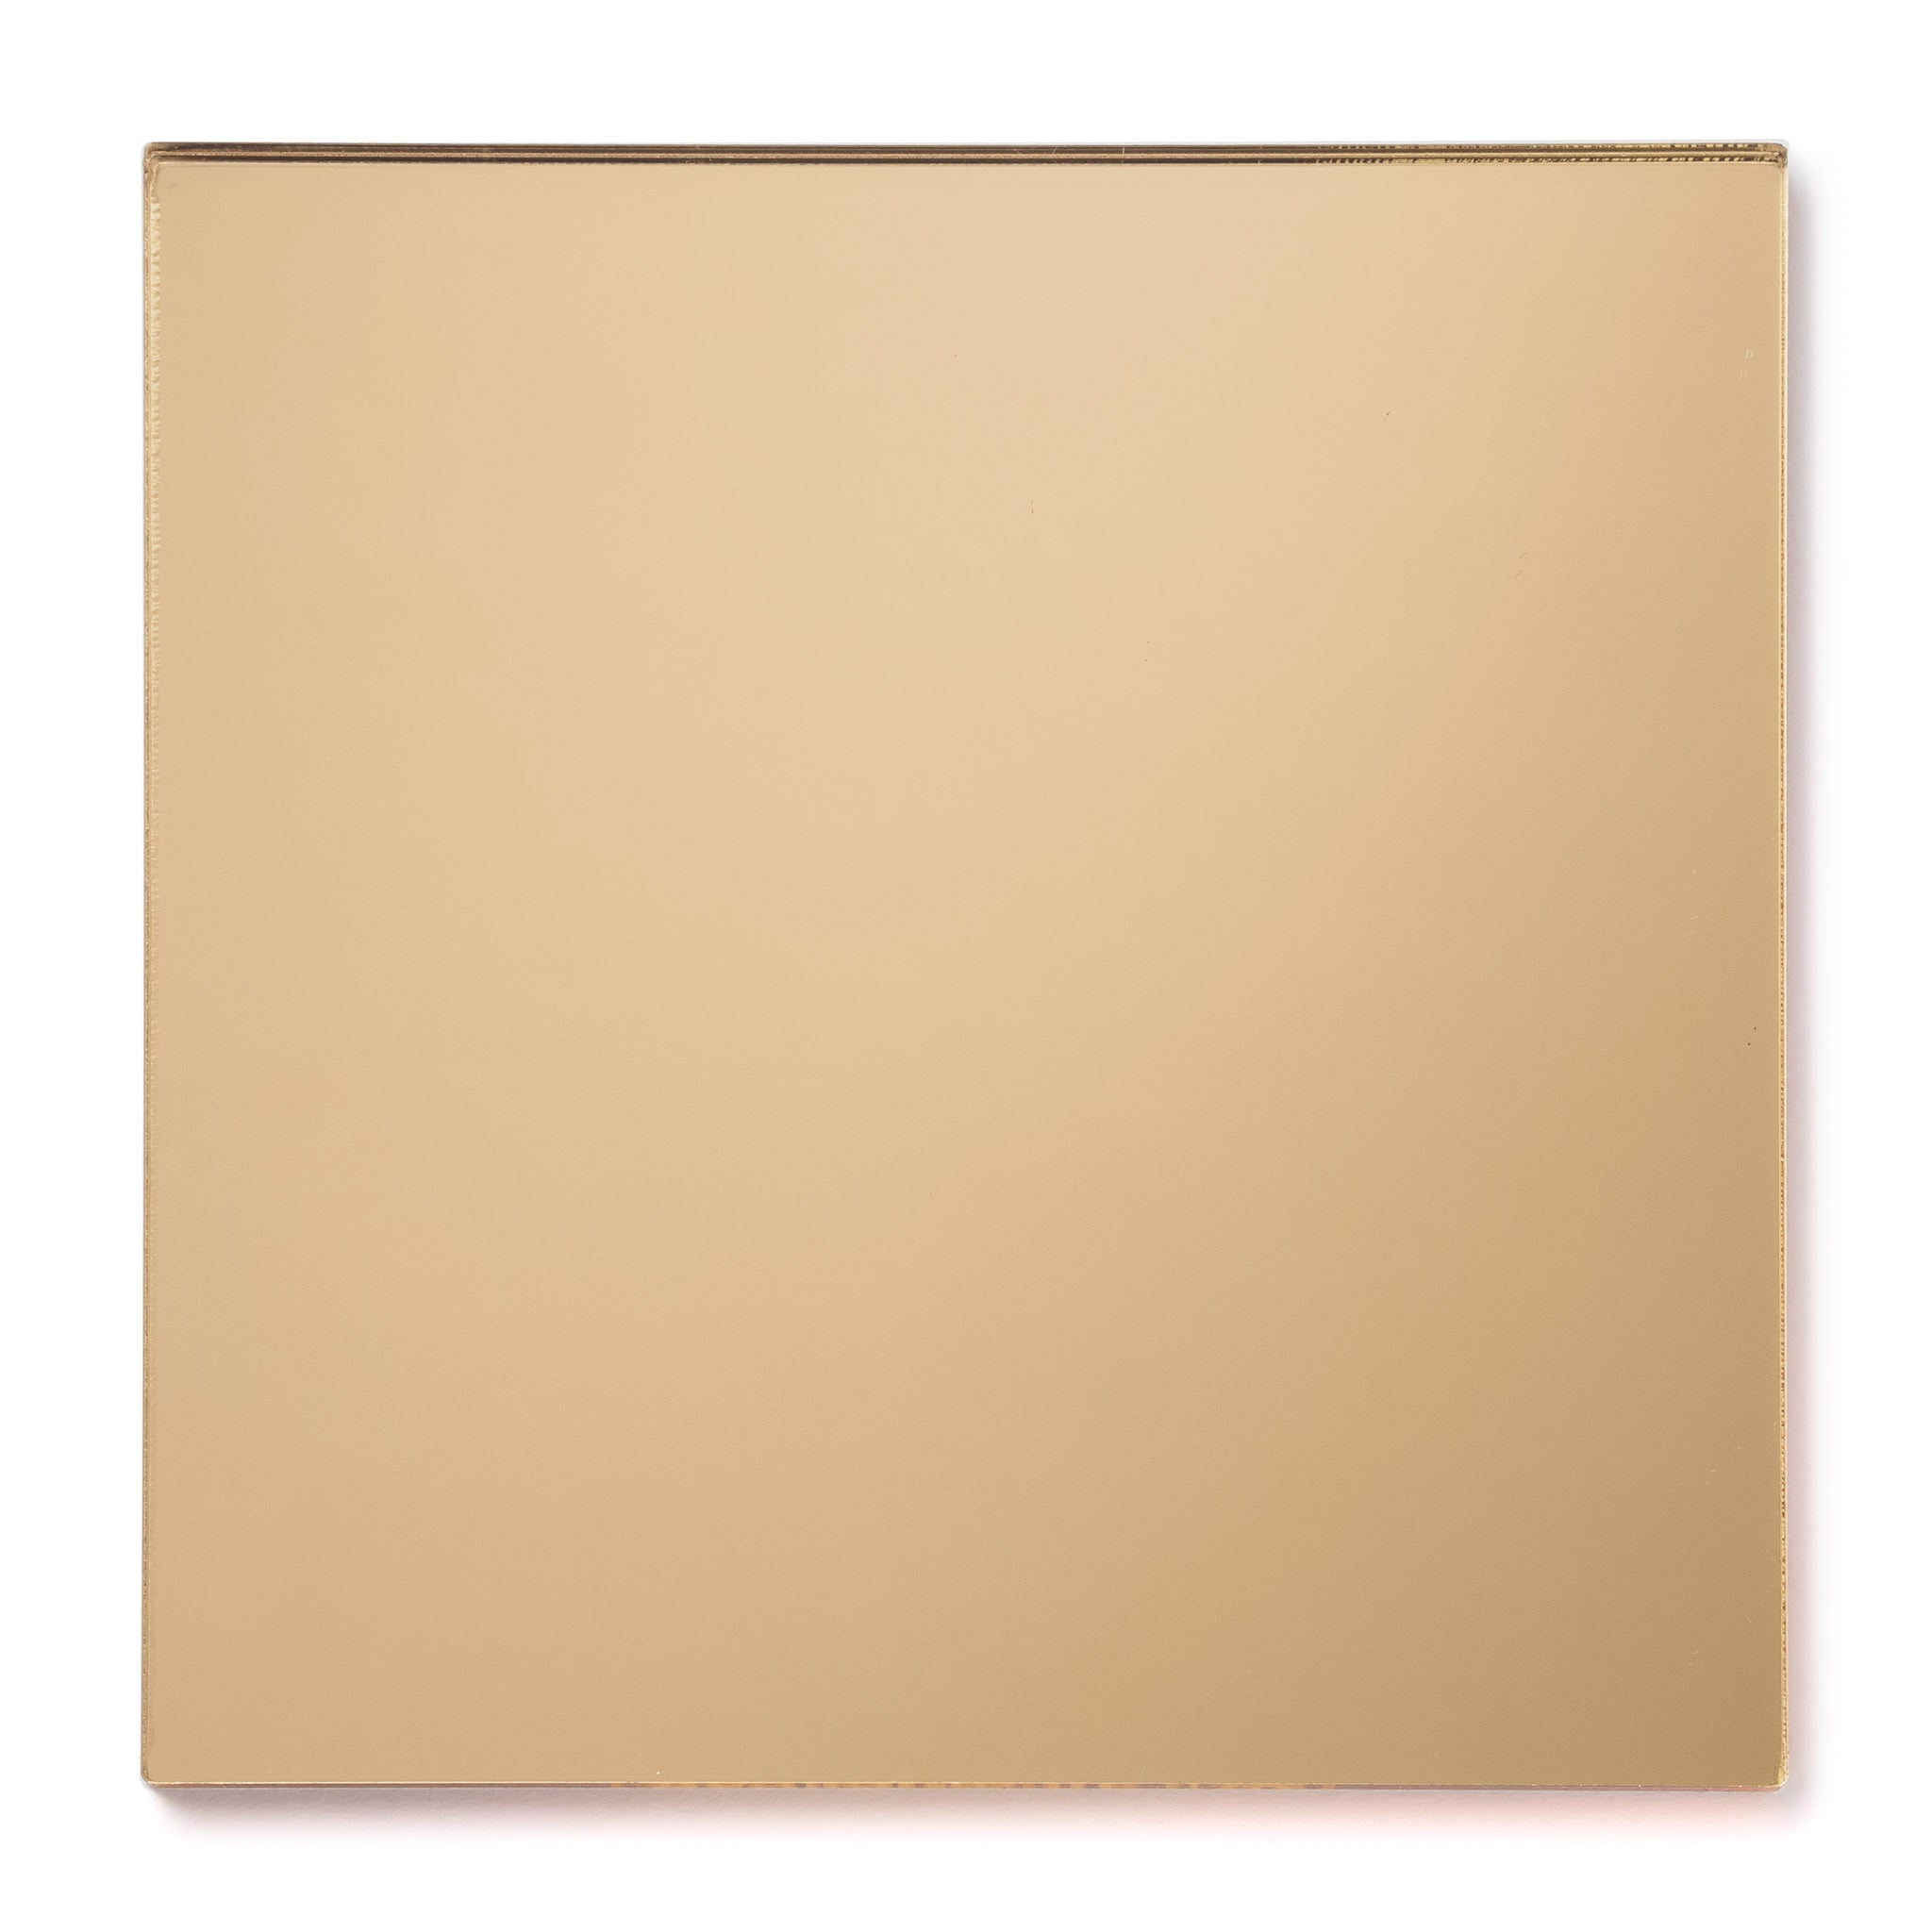 Gold Mirror Acrylic Plexiglass Sheet, color 1300